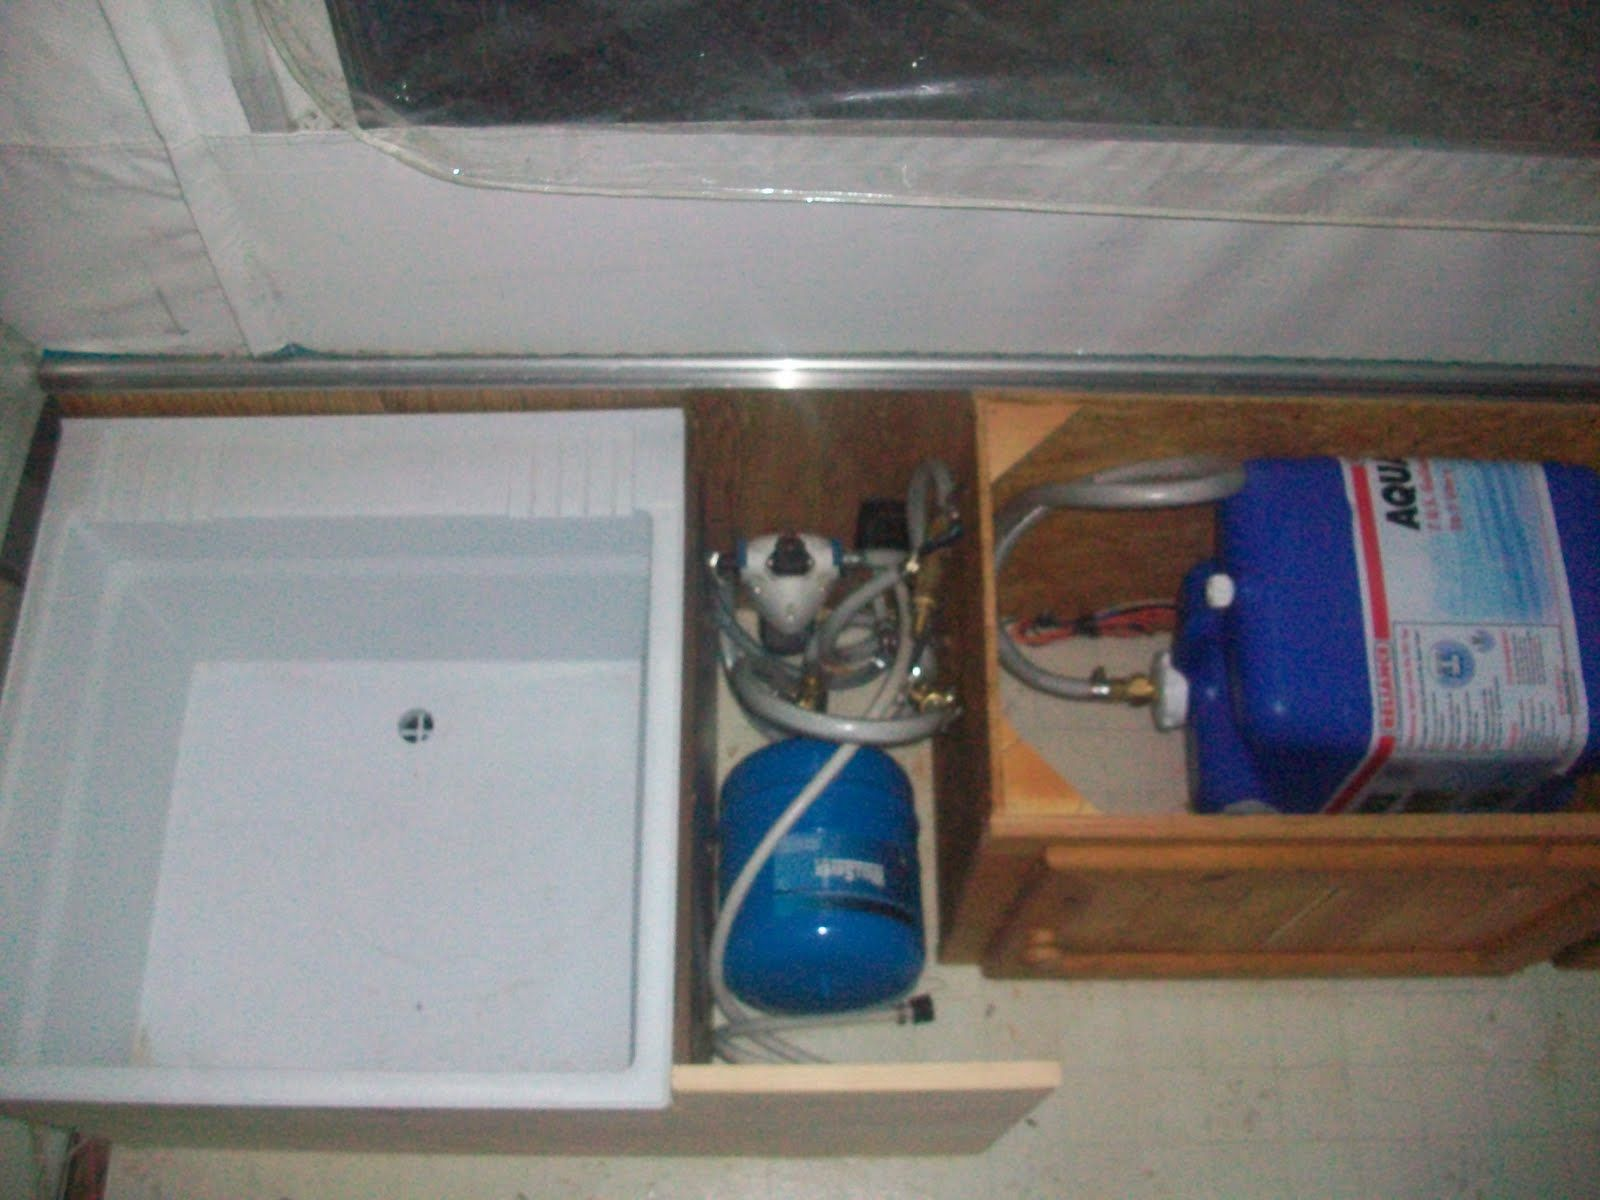 rv showers | This shows the plumbing setup: | Life on the road ...